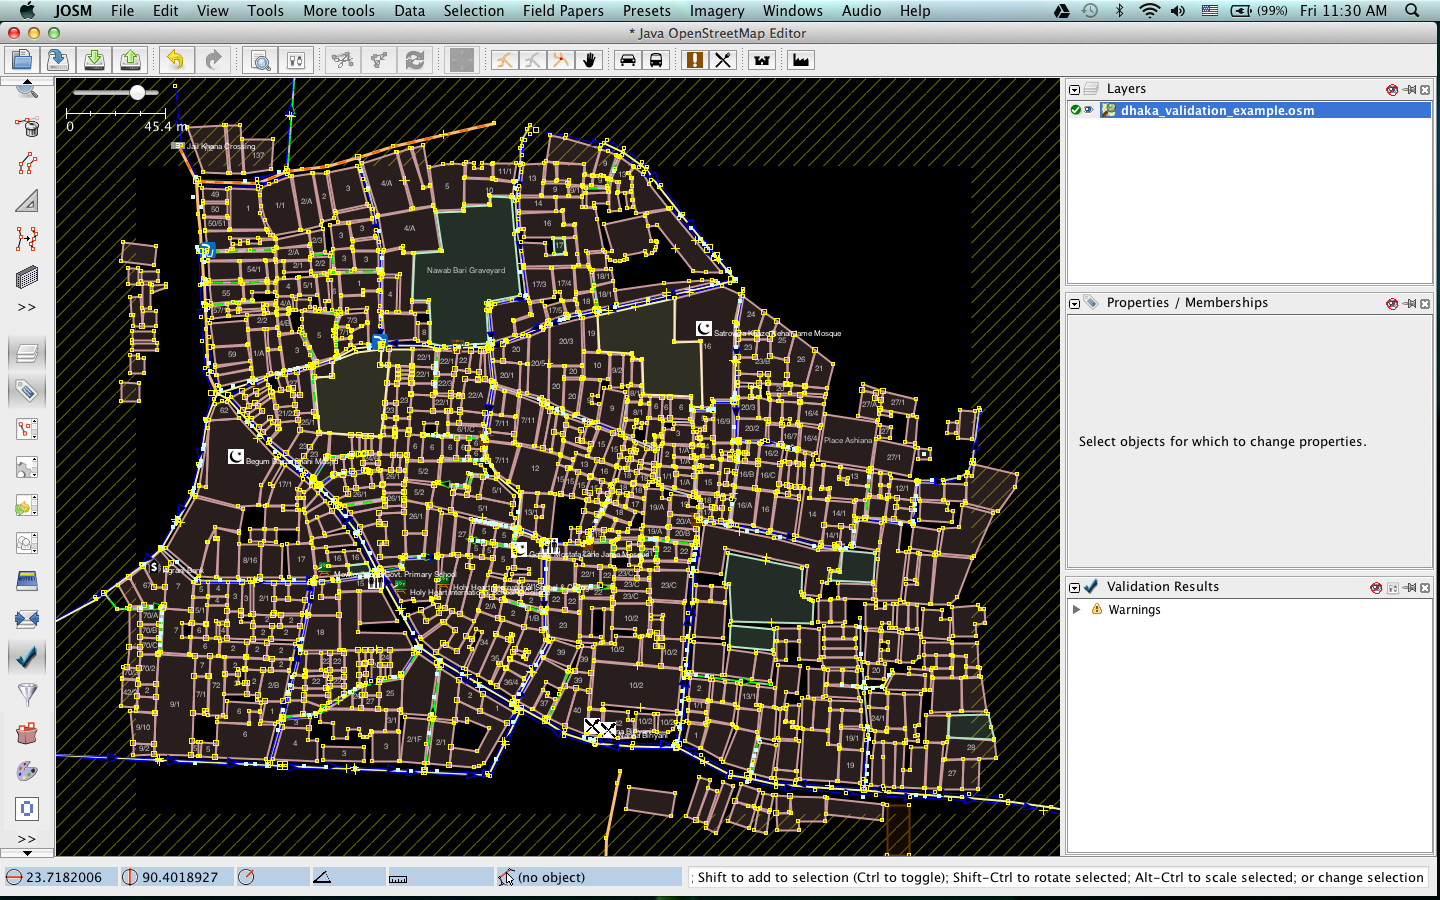 _images/reviewing_osm_data_image03.png